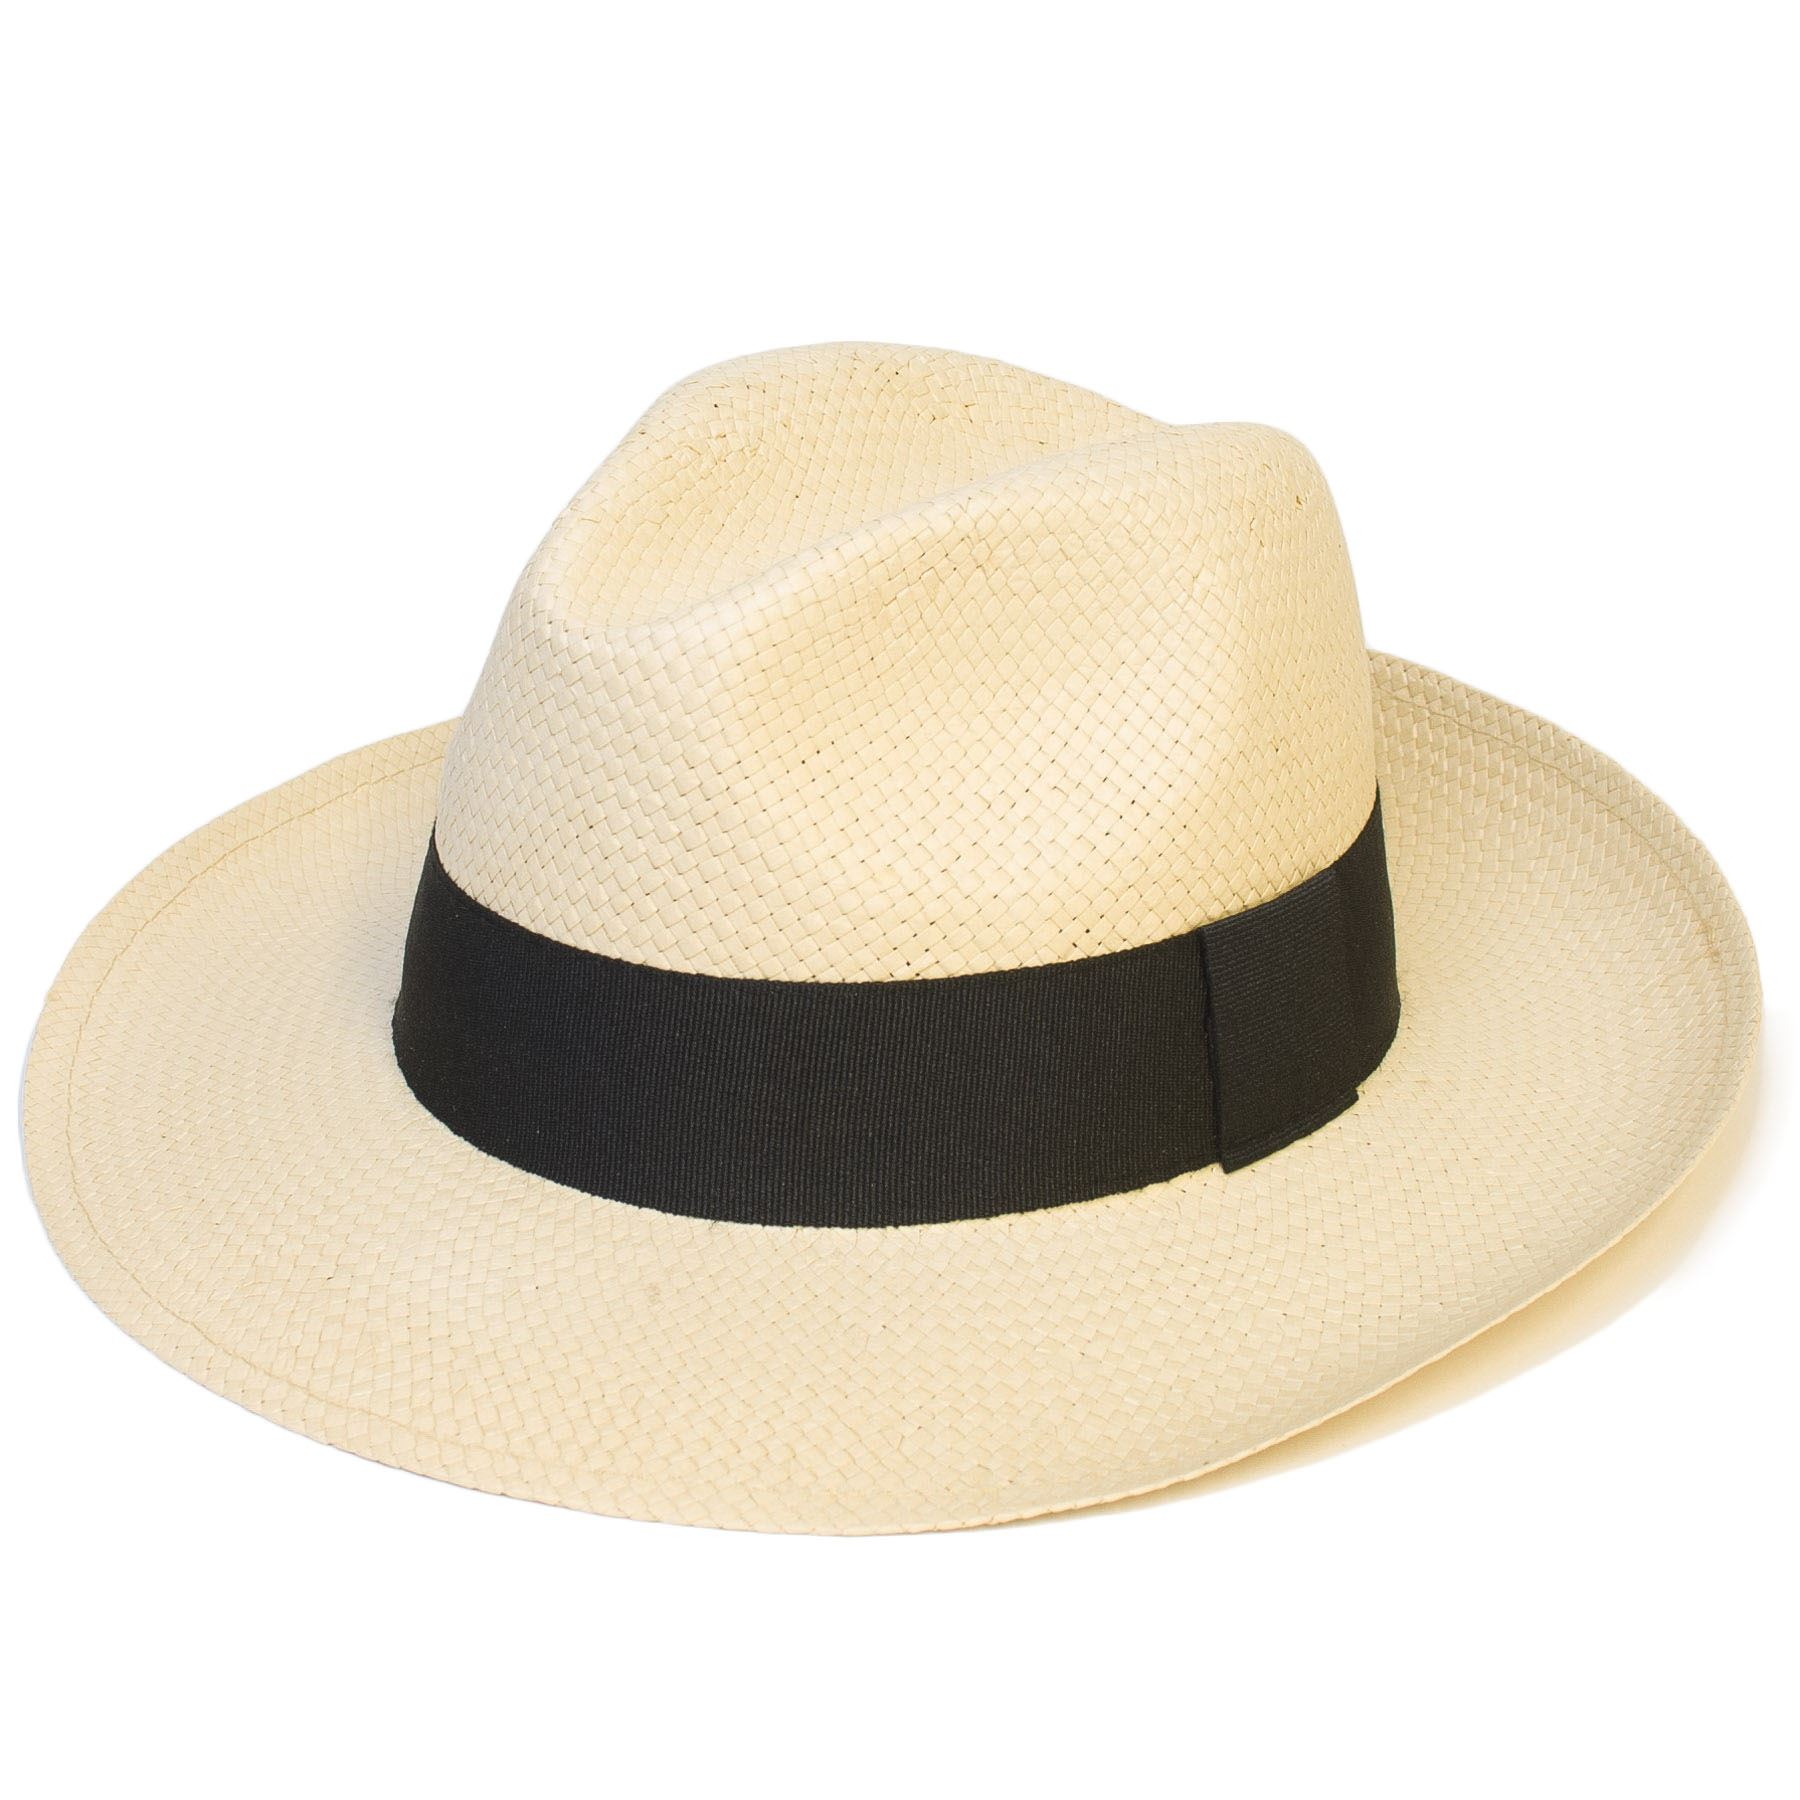 4d9ba87f95f98 Mens Women Woven Fedora Trilby Wide Brim Panama Hat Cap with Band New